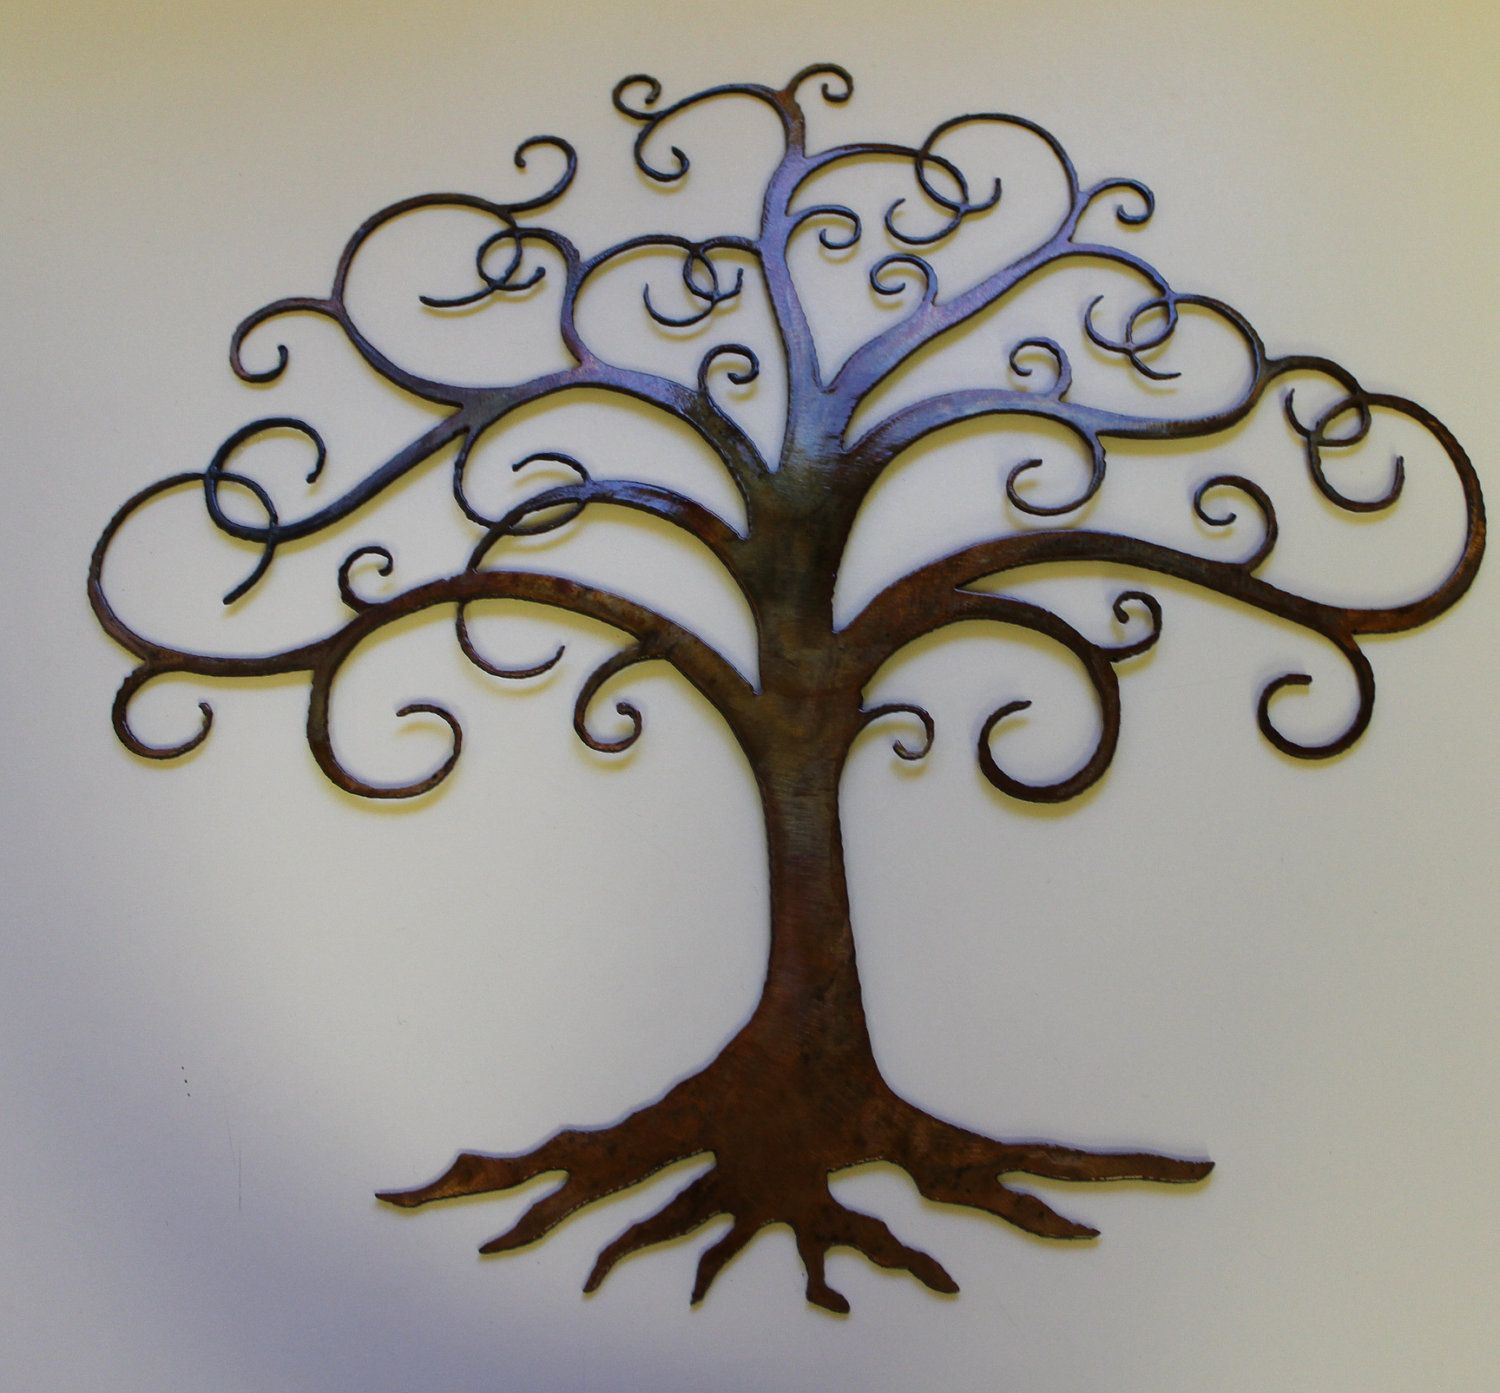 Tree of life swirled tree of life metal wall art decor for Decor outline